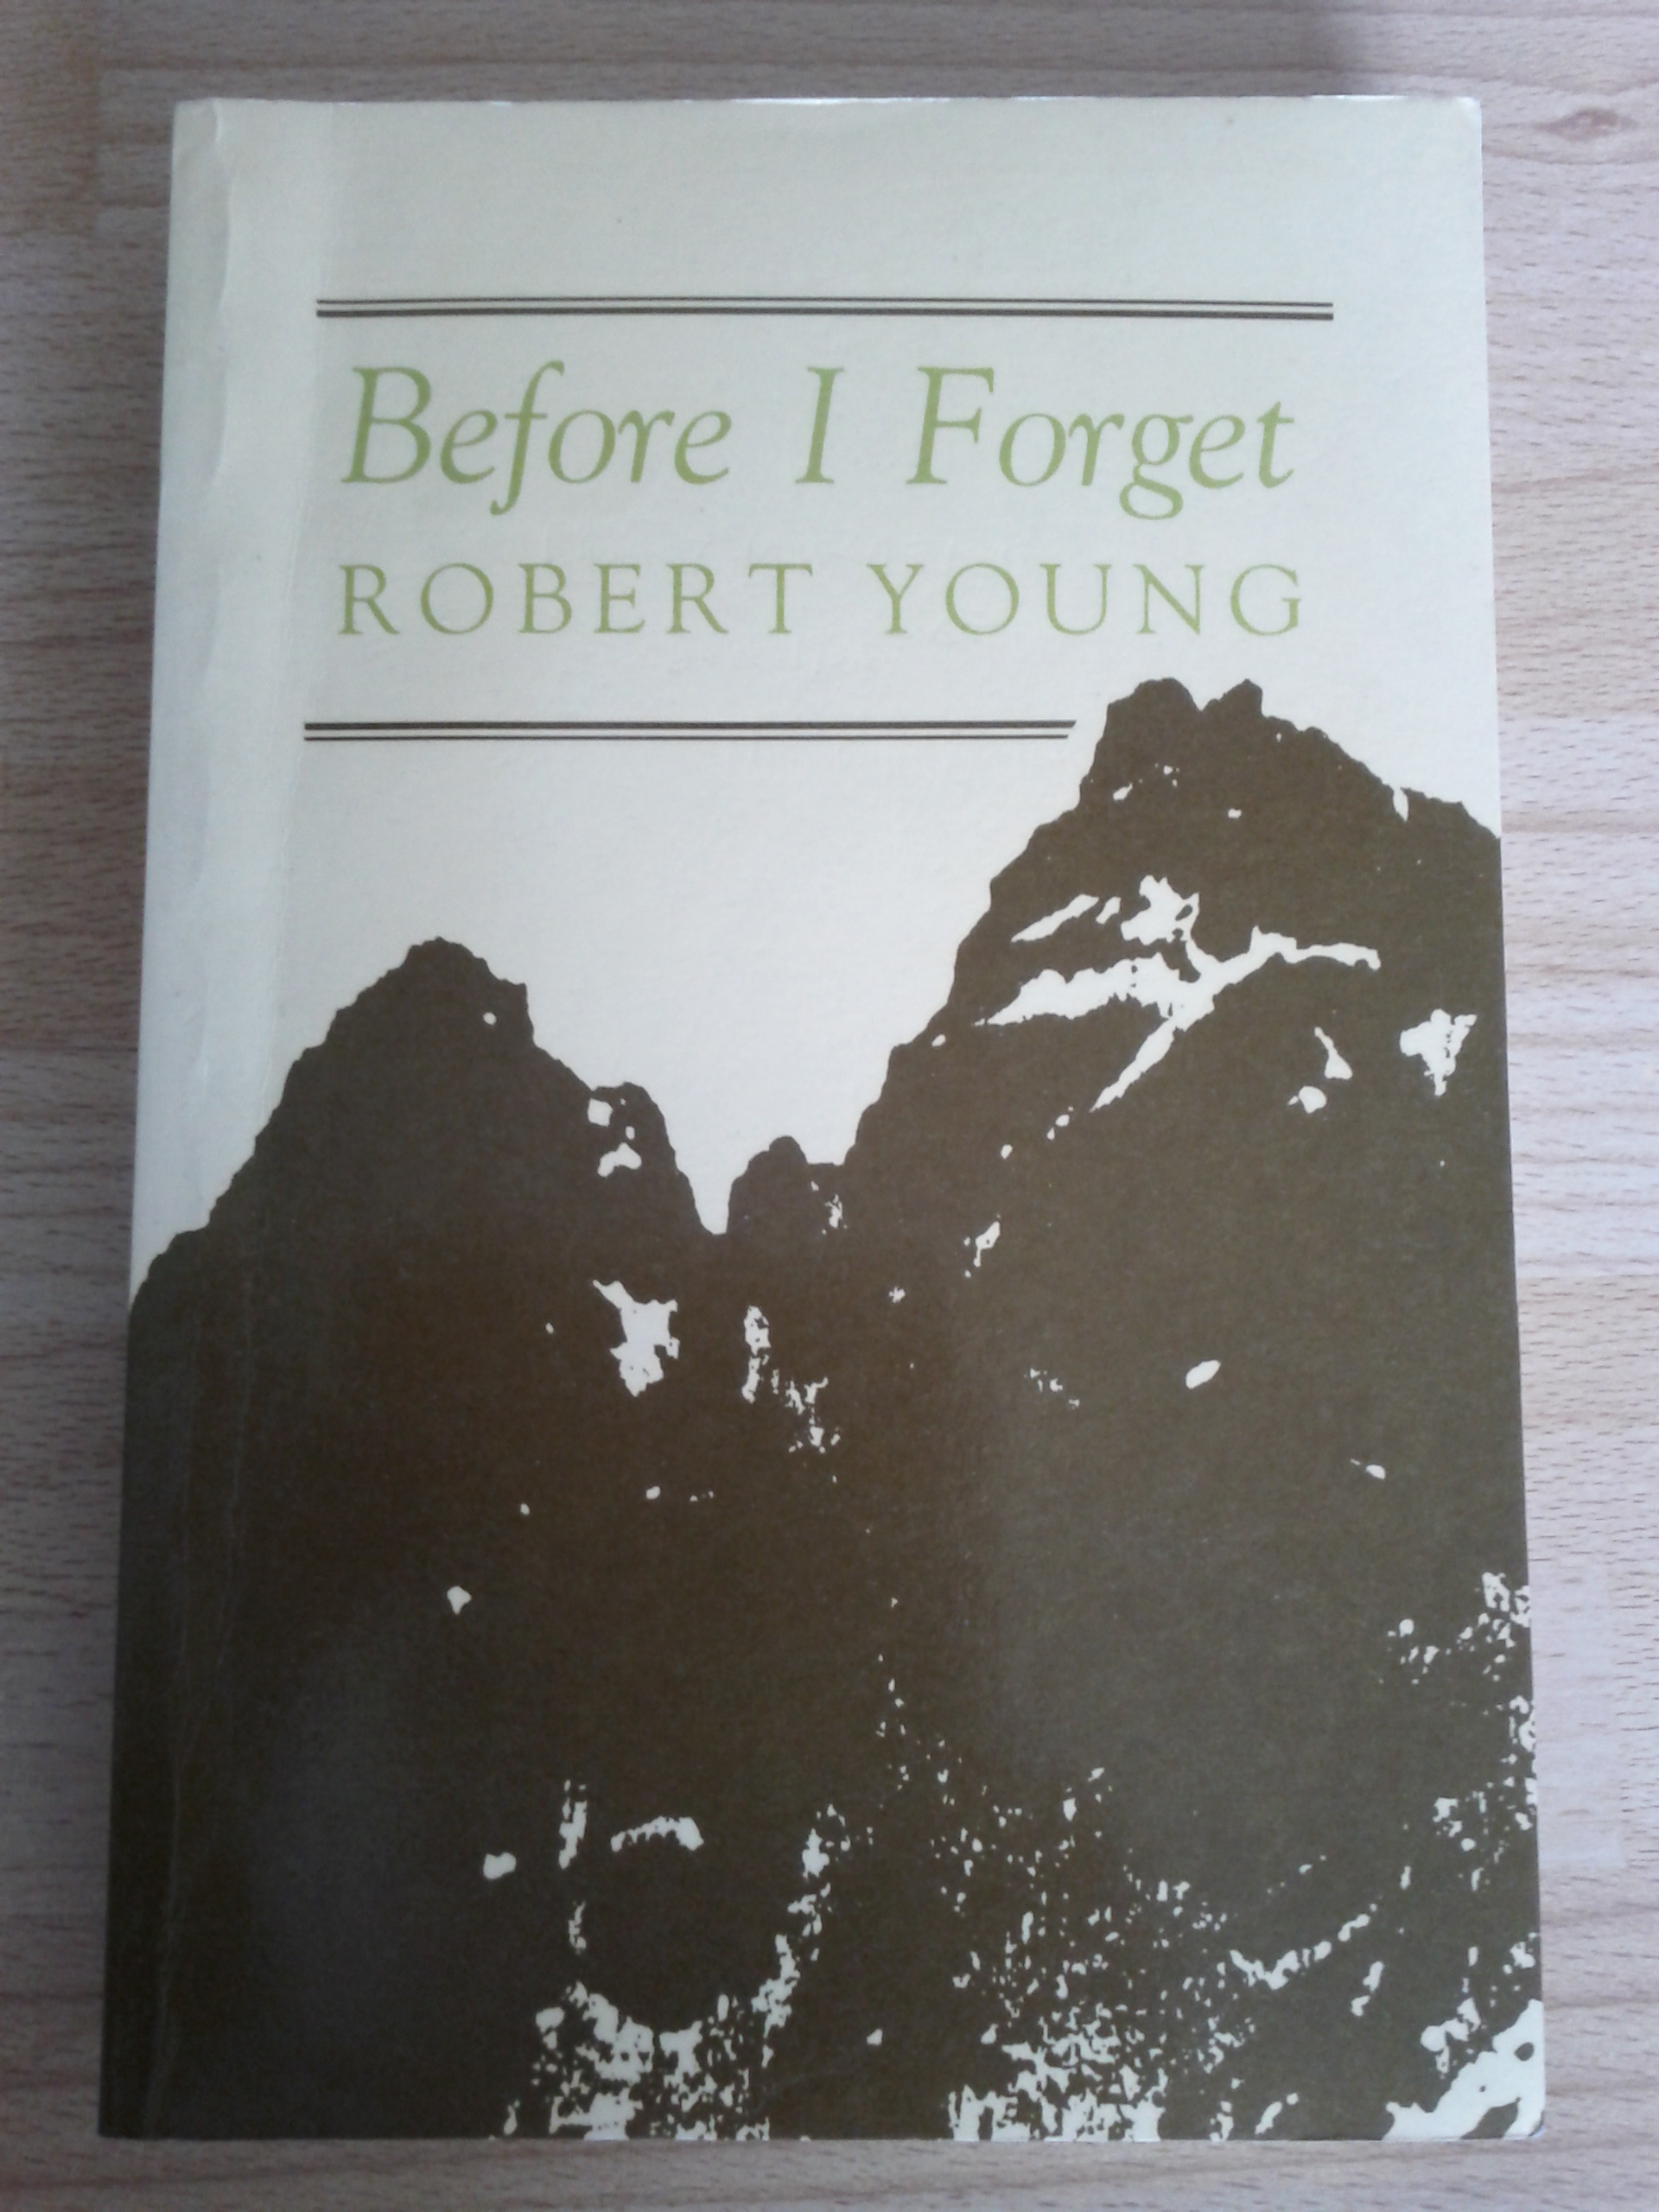 Robert Young's 'Before I Forget'